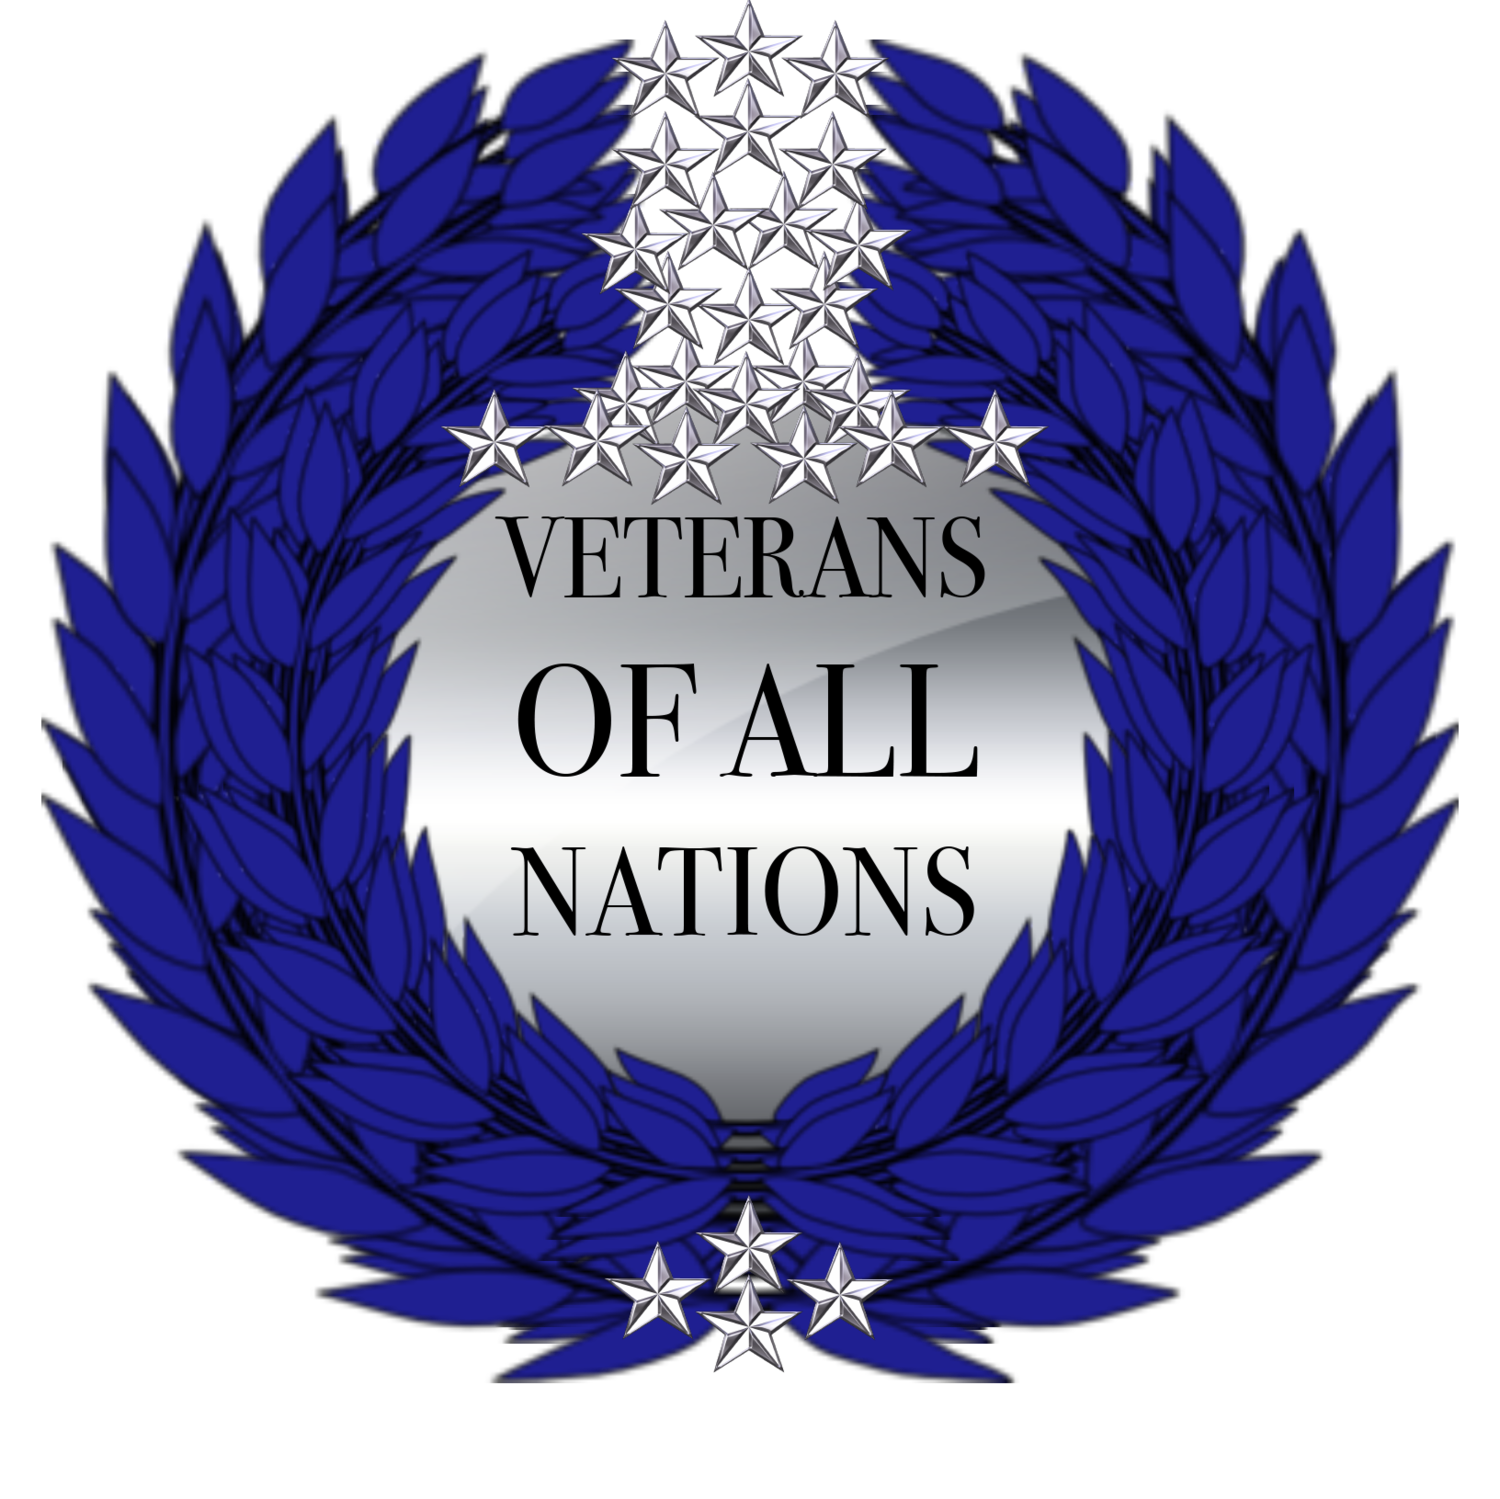 Veterans of all Nations